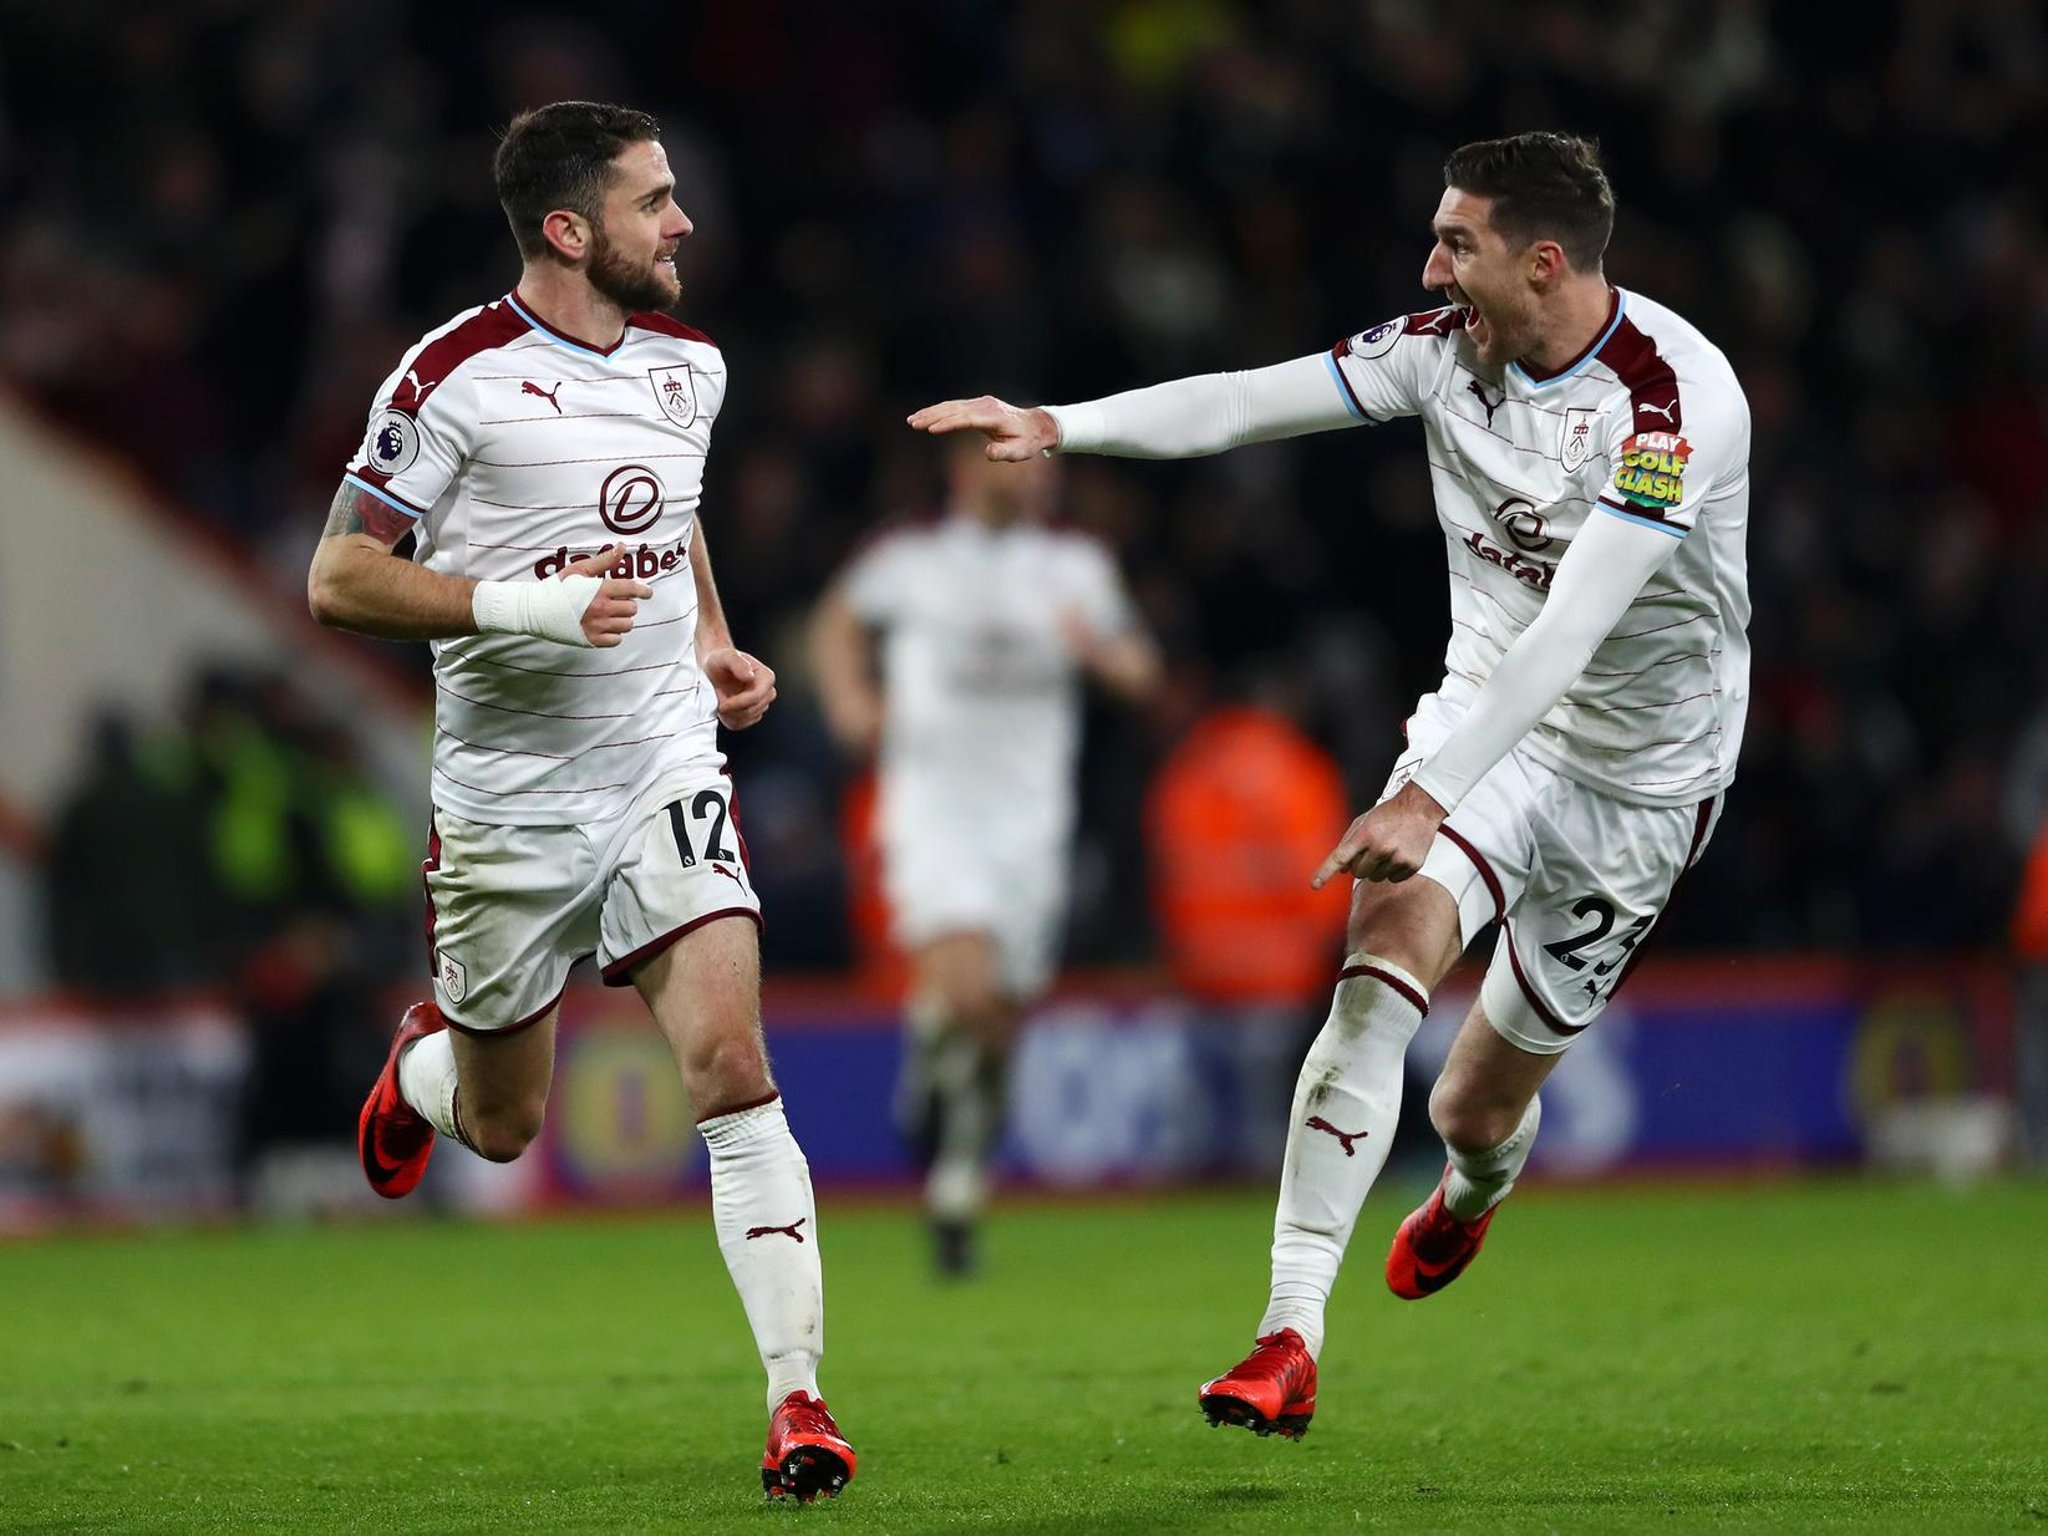 Former Burnley winger Robbie Brady joins Bournemouth